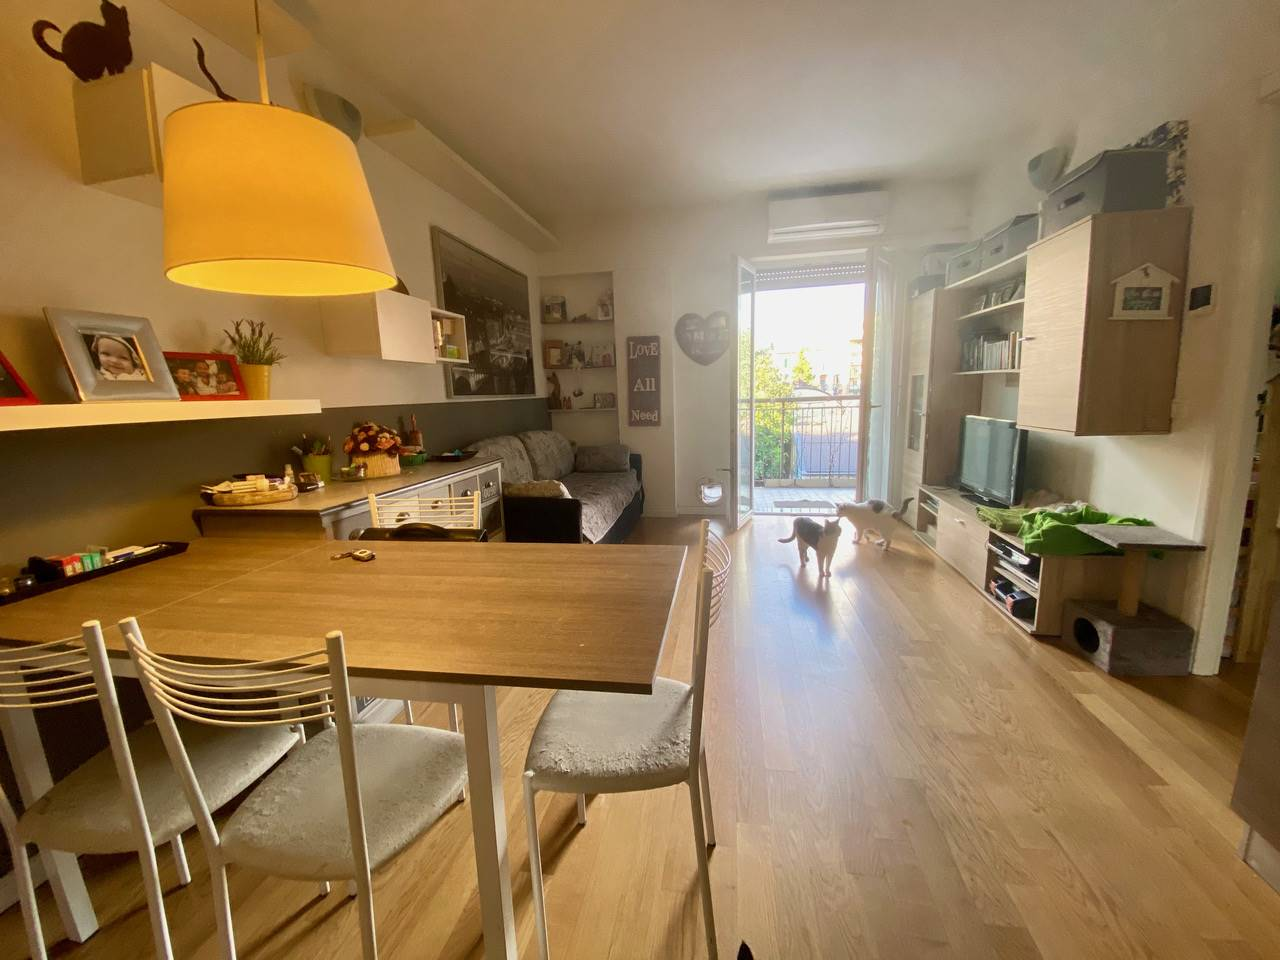 ESPINASSE, MILANO, Apartment for sale of 51 Sq. mt., Restored, Heating Individual heating system, Energetic class: G, Epi: 175 kwh/m2 year, placed at